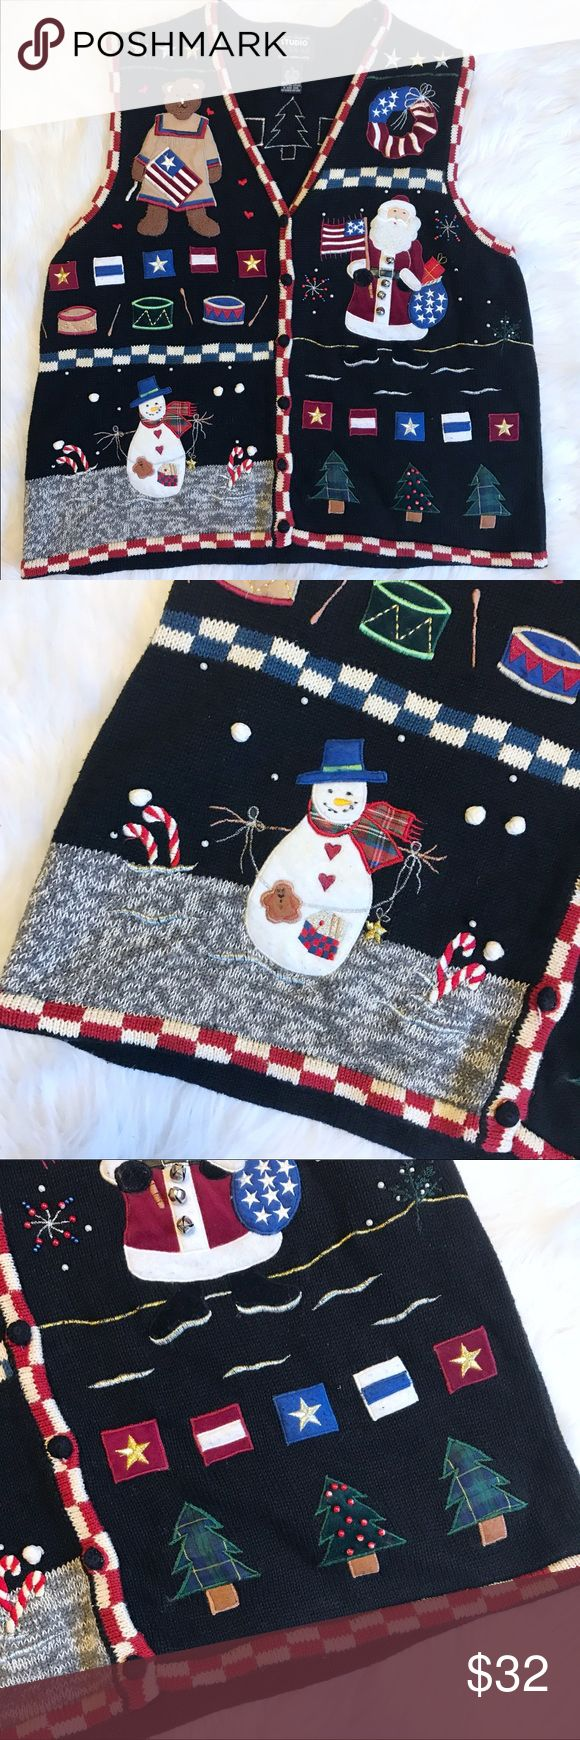 """Vintage Ugly Christmas Sweater Vest 1X Awesome VTG Christmas Sweater Vest. So much fun! Bells, Appliqué, Embroidery! Covered buttons. Good vintage condition, some wear on the felt but still looks great! Size 1X. Approx measurements lying flat: chest 22"""", length 24"""". B6 Vintage Sweaters"""